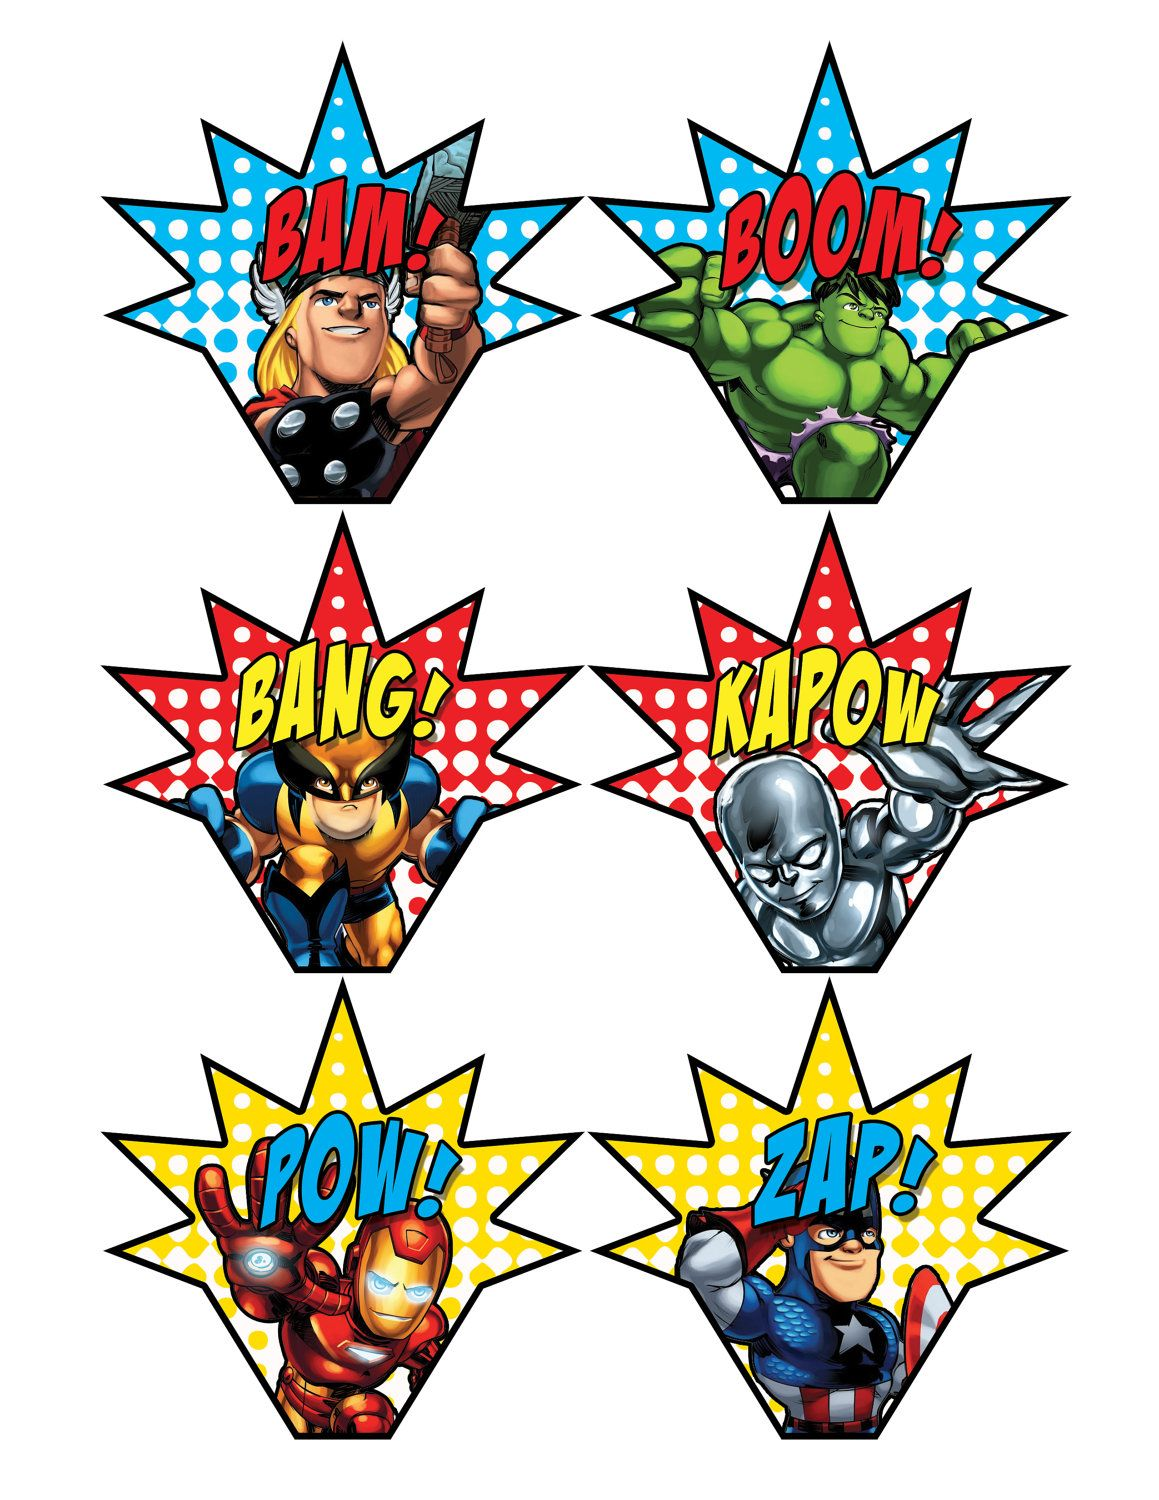 Avengers birthday 4 clipart banner freeuse download Superhero Party Signs • Boom, Pow, Zap, Bam, Pop • 11 x 17 • PC ... banner freeuse download